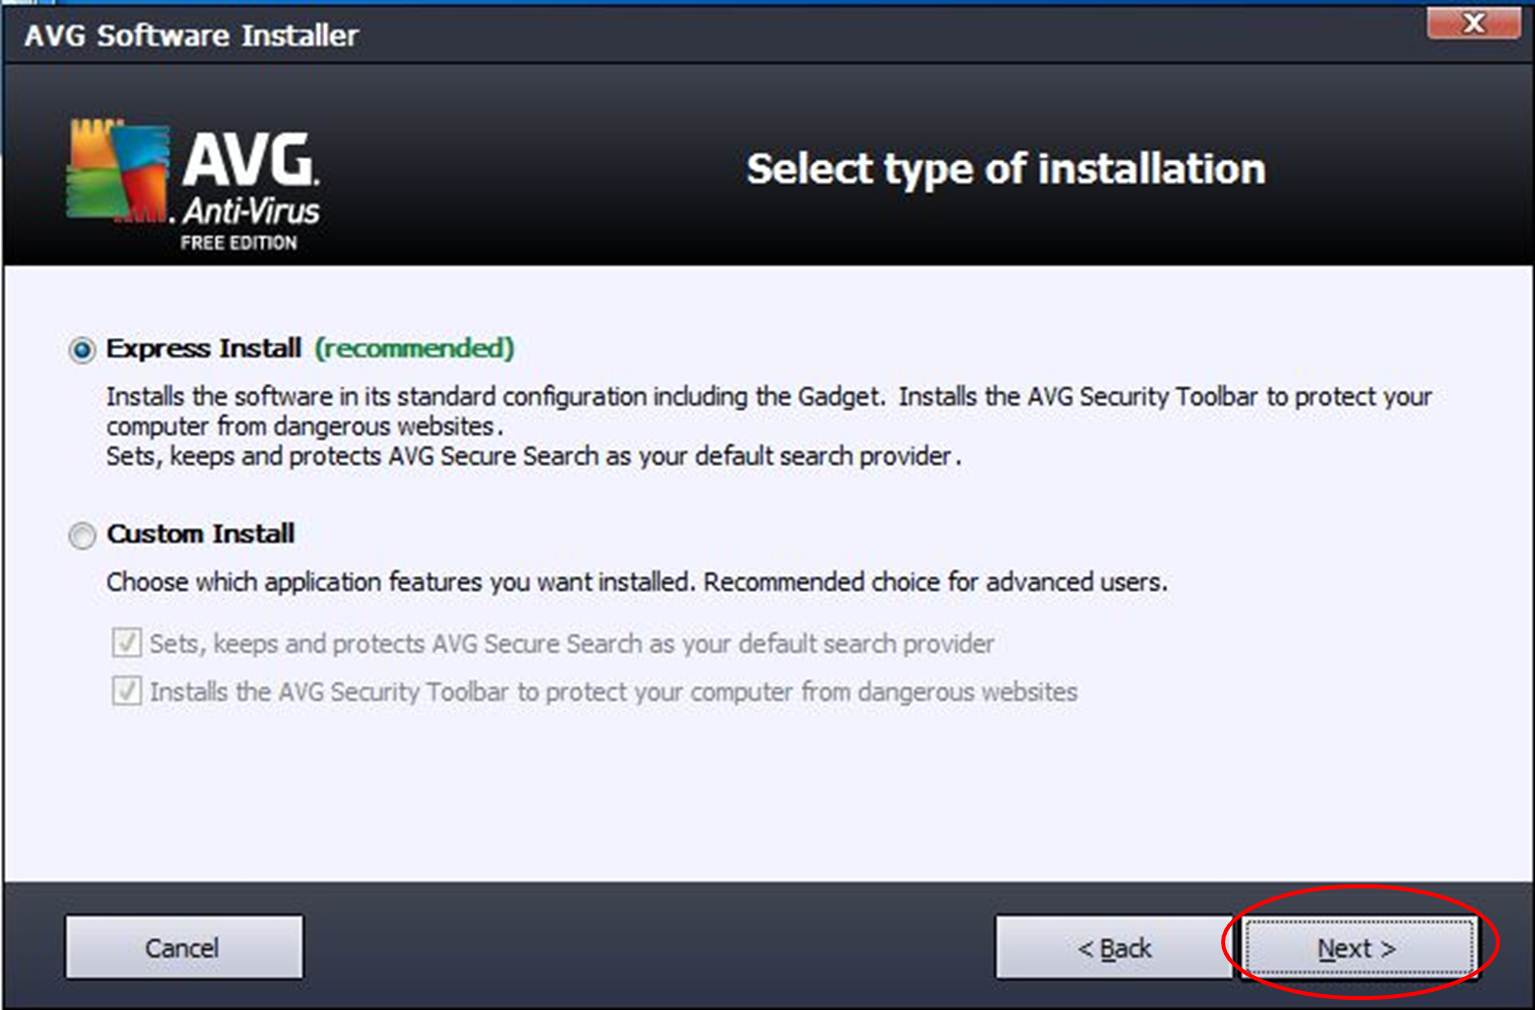 Download avg free antivirus 2019 offline installer for xp, vista.